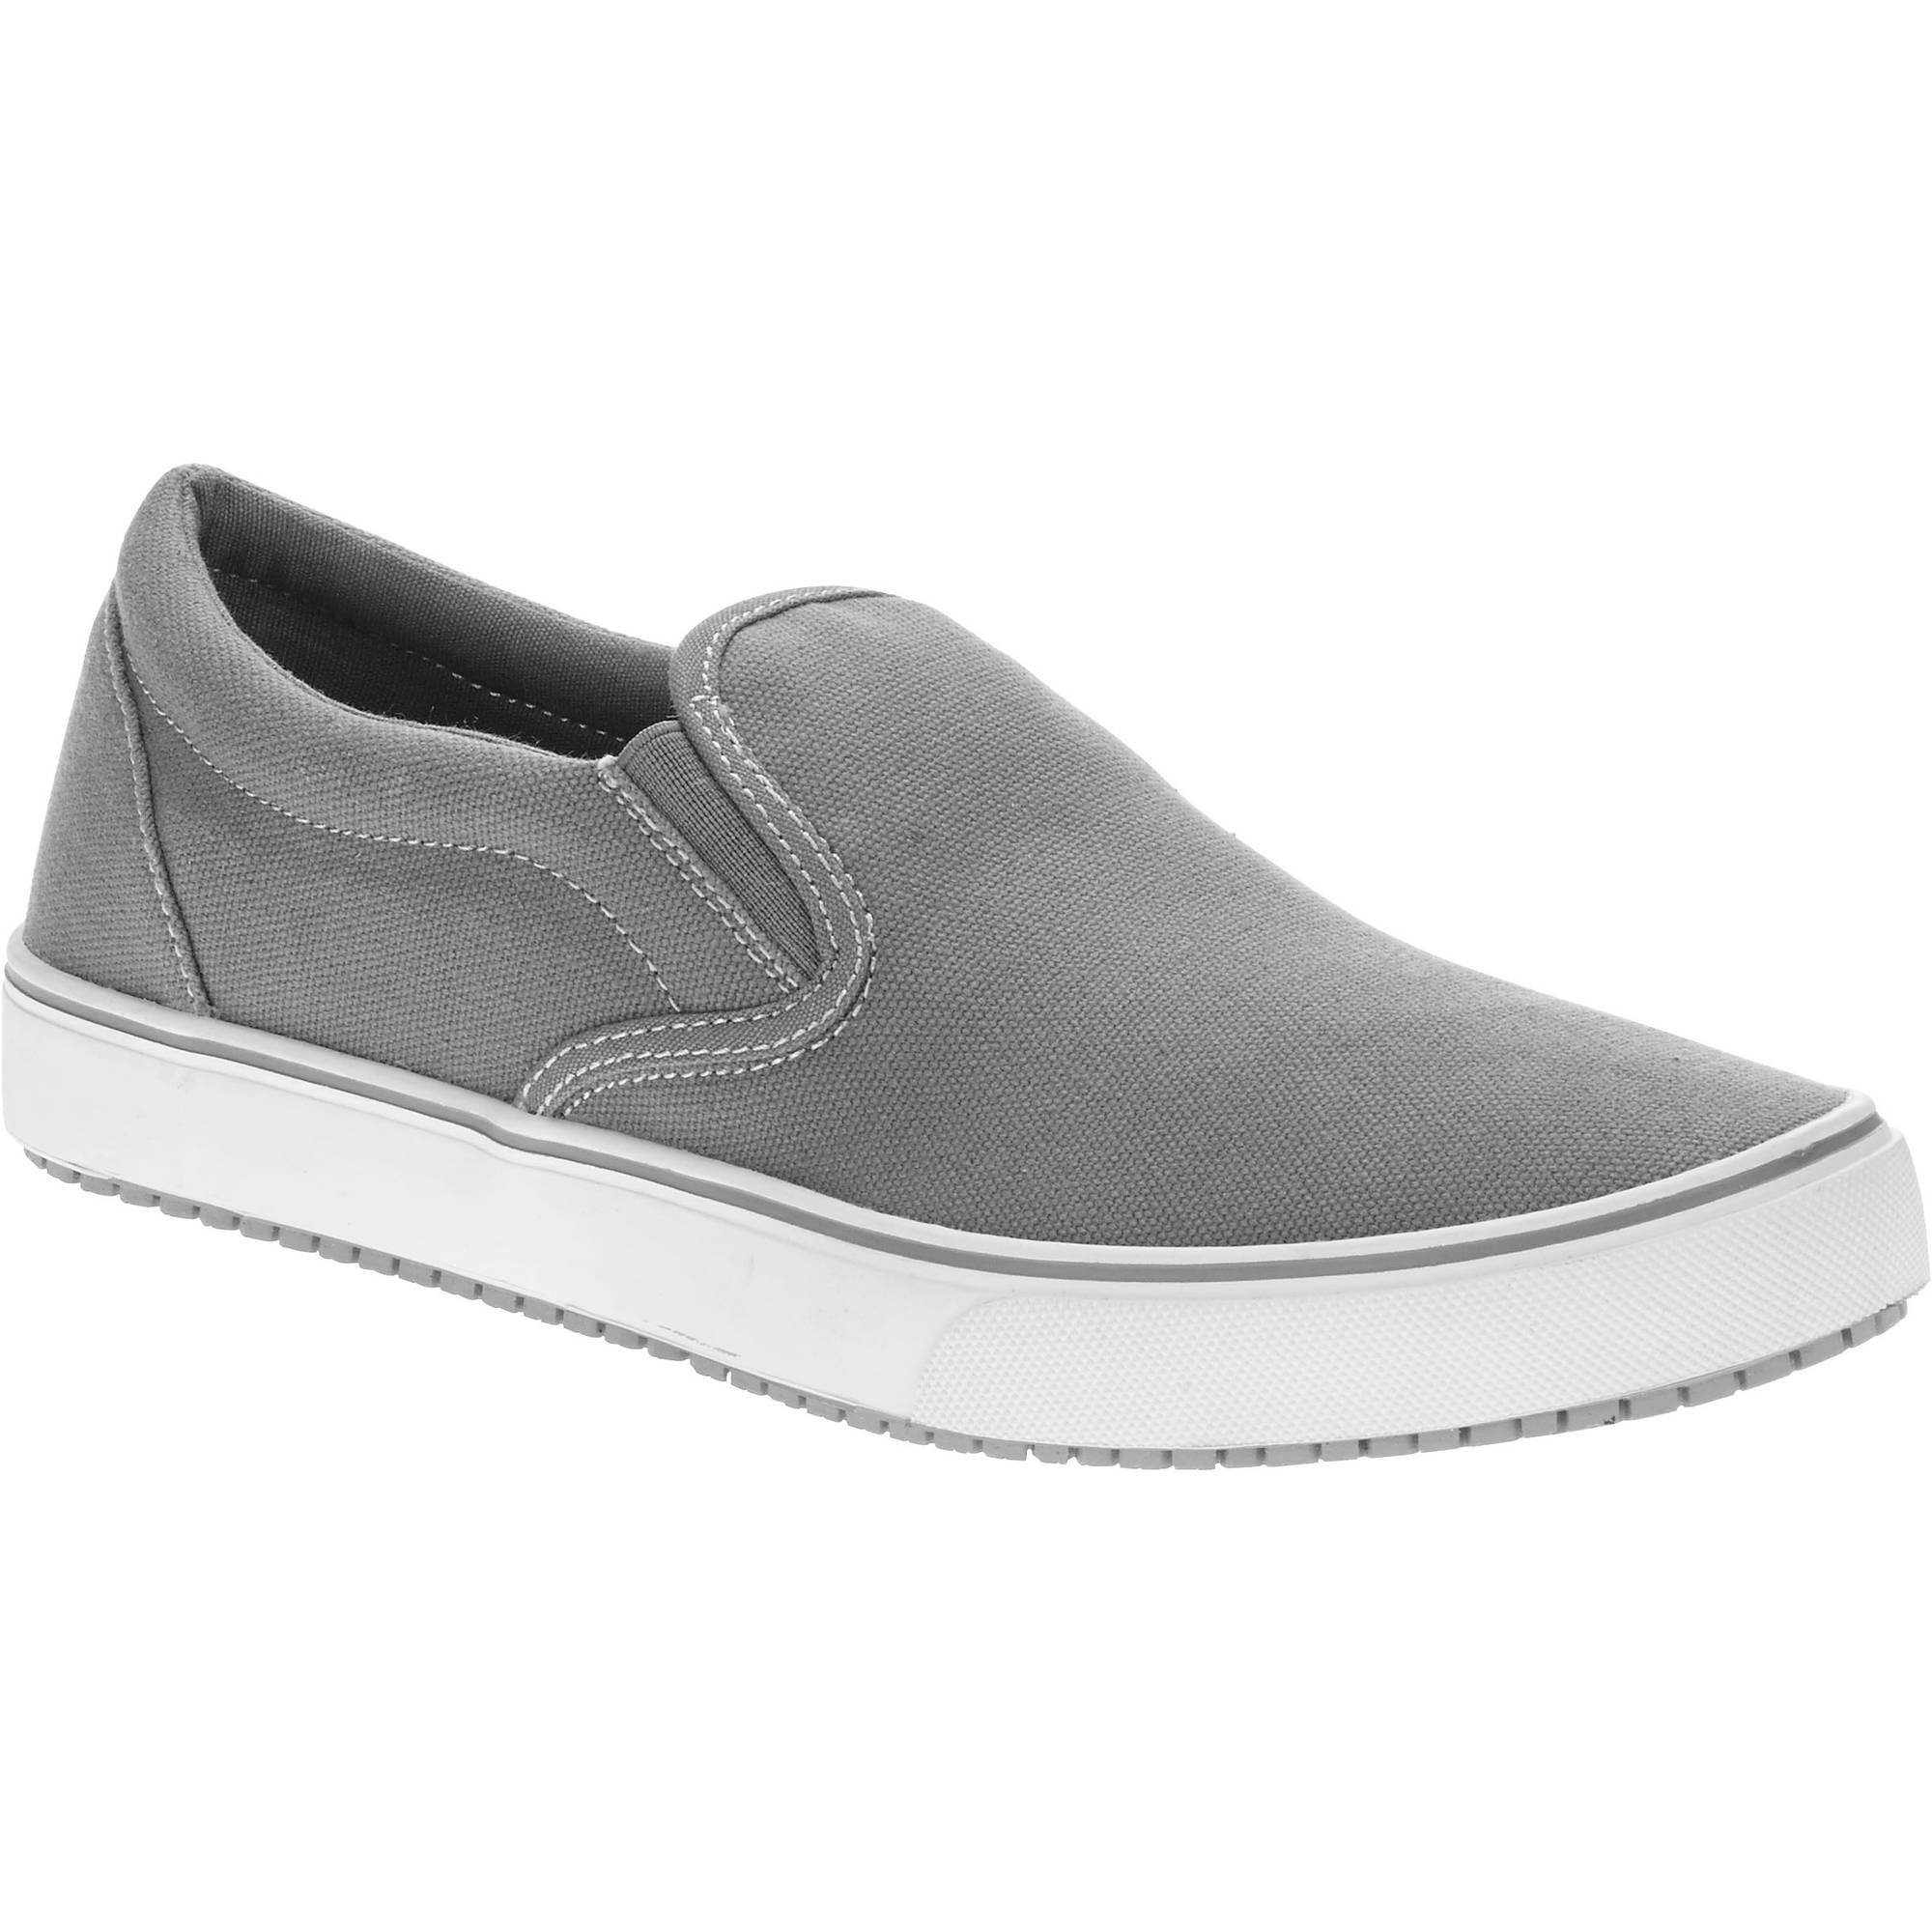 Tredsafe Unisex Canvas Ric Slip Resistant Casual Shoe by